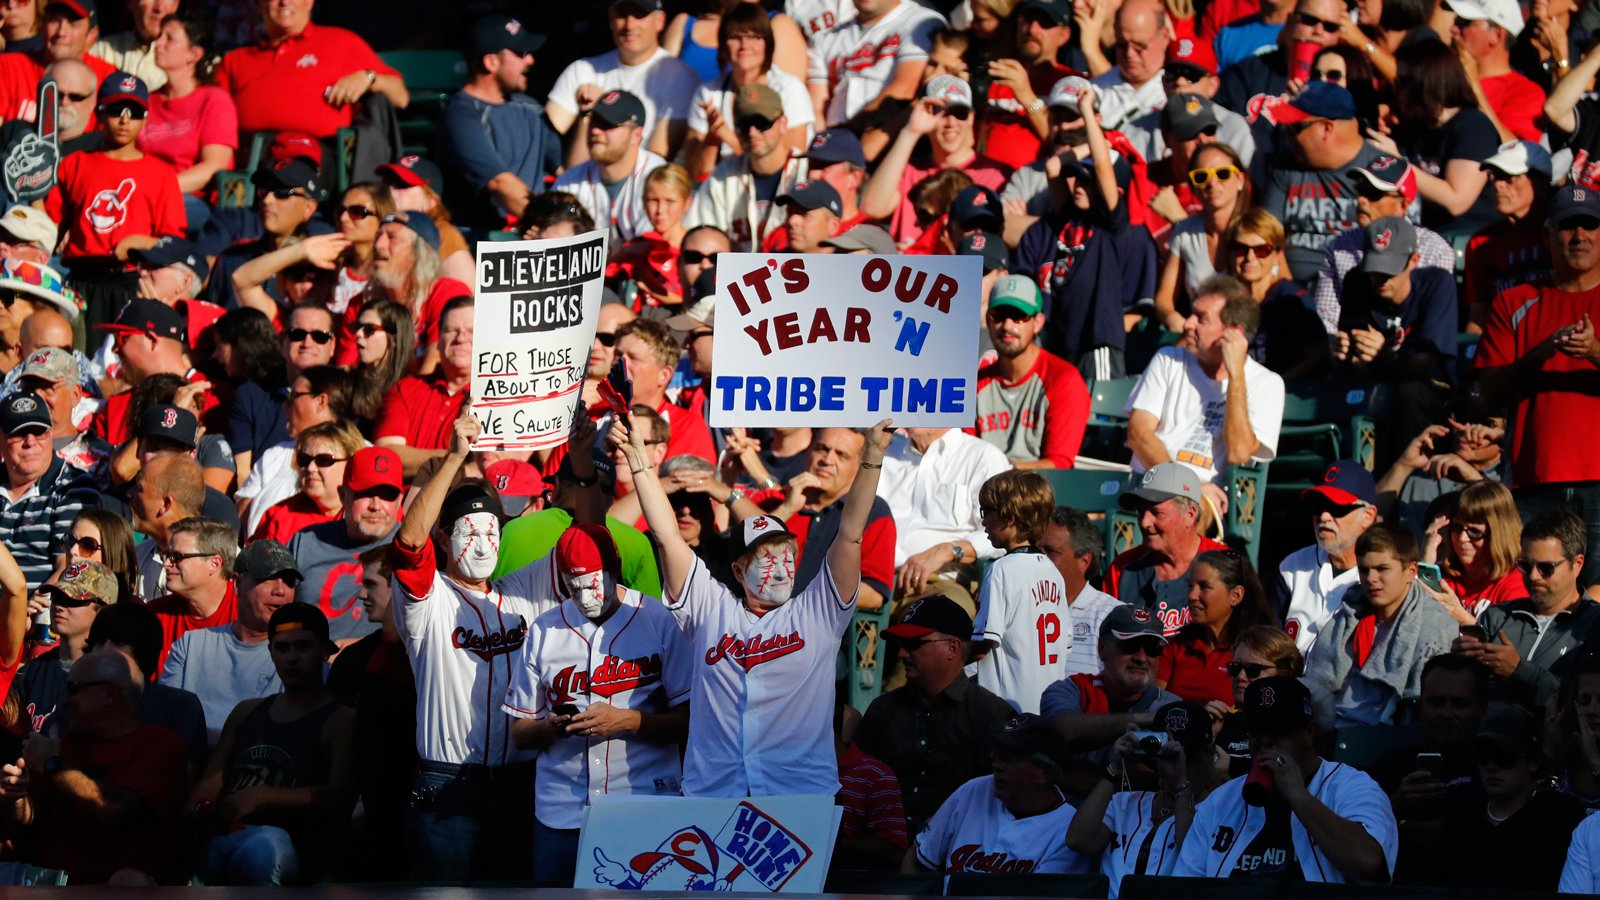 ICYMI: @Indians ALDS tickets go on sale to the public next Friday, Sept. 29 #RallyTogether https://t.co/mjBqVef2bW https://t.co/35gxTtSLVW